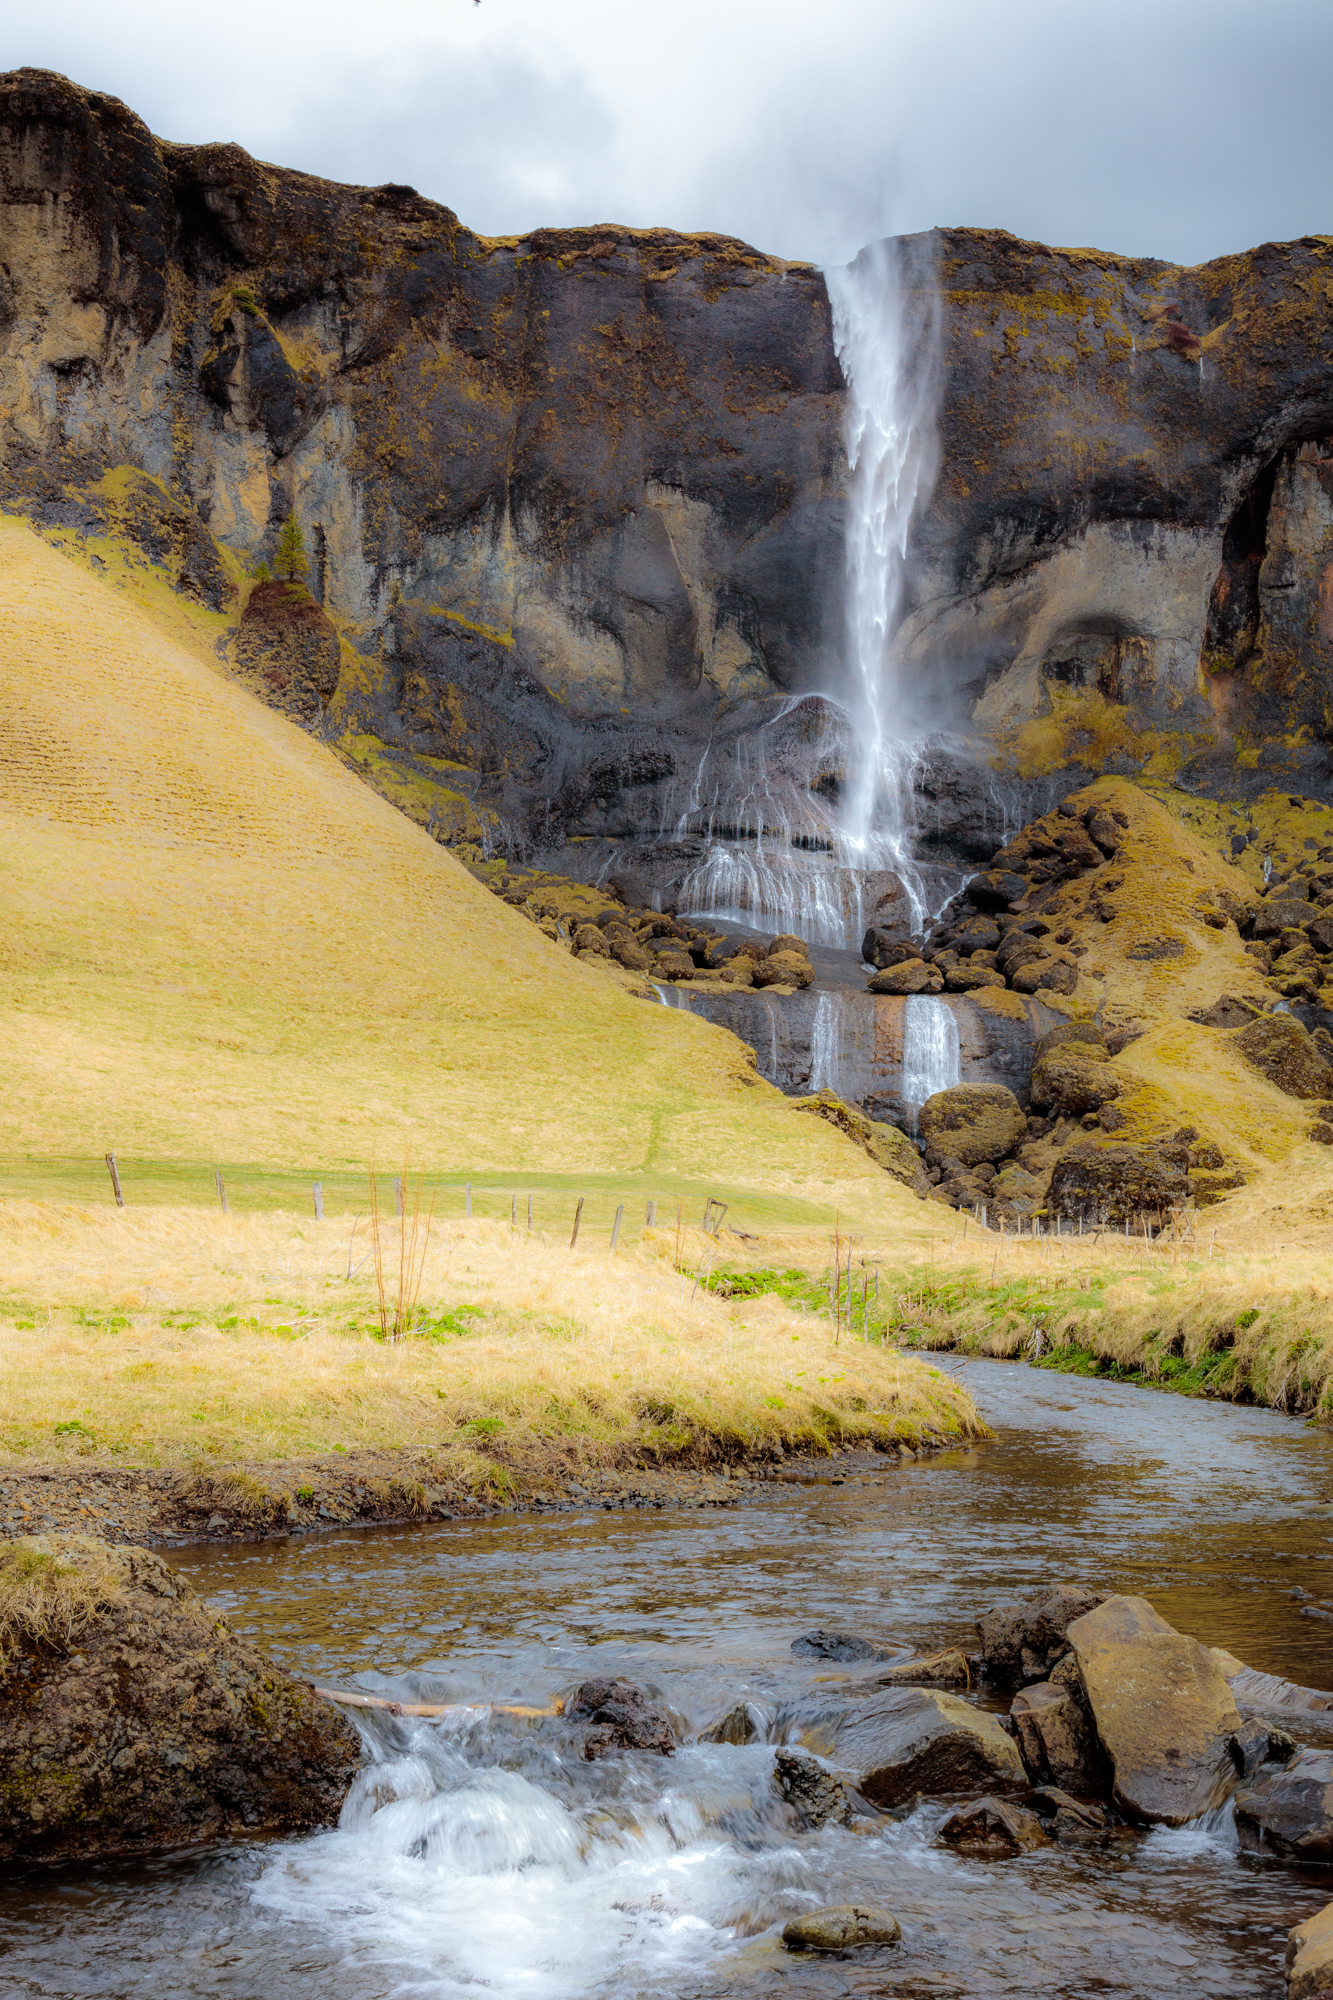 Waterfall in SE coast, 60 miles east of Vik in Sidu